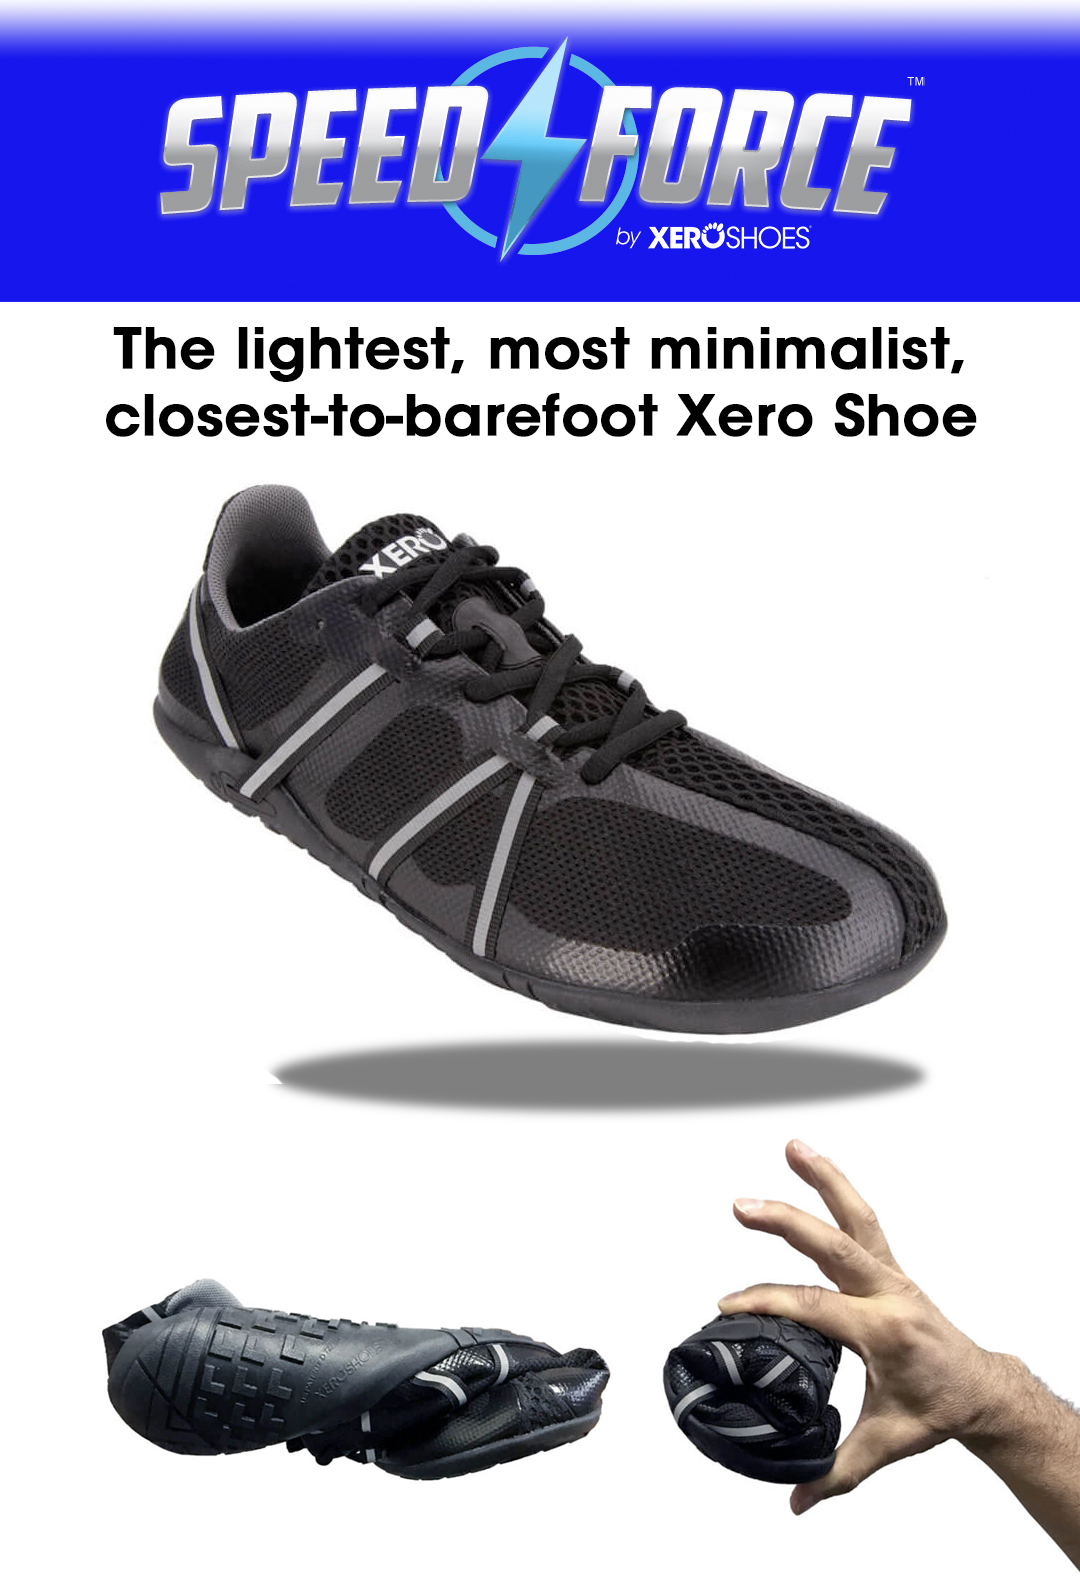 Win The New Xero Shoes Speed Force